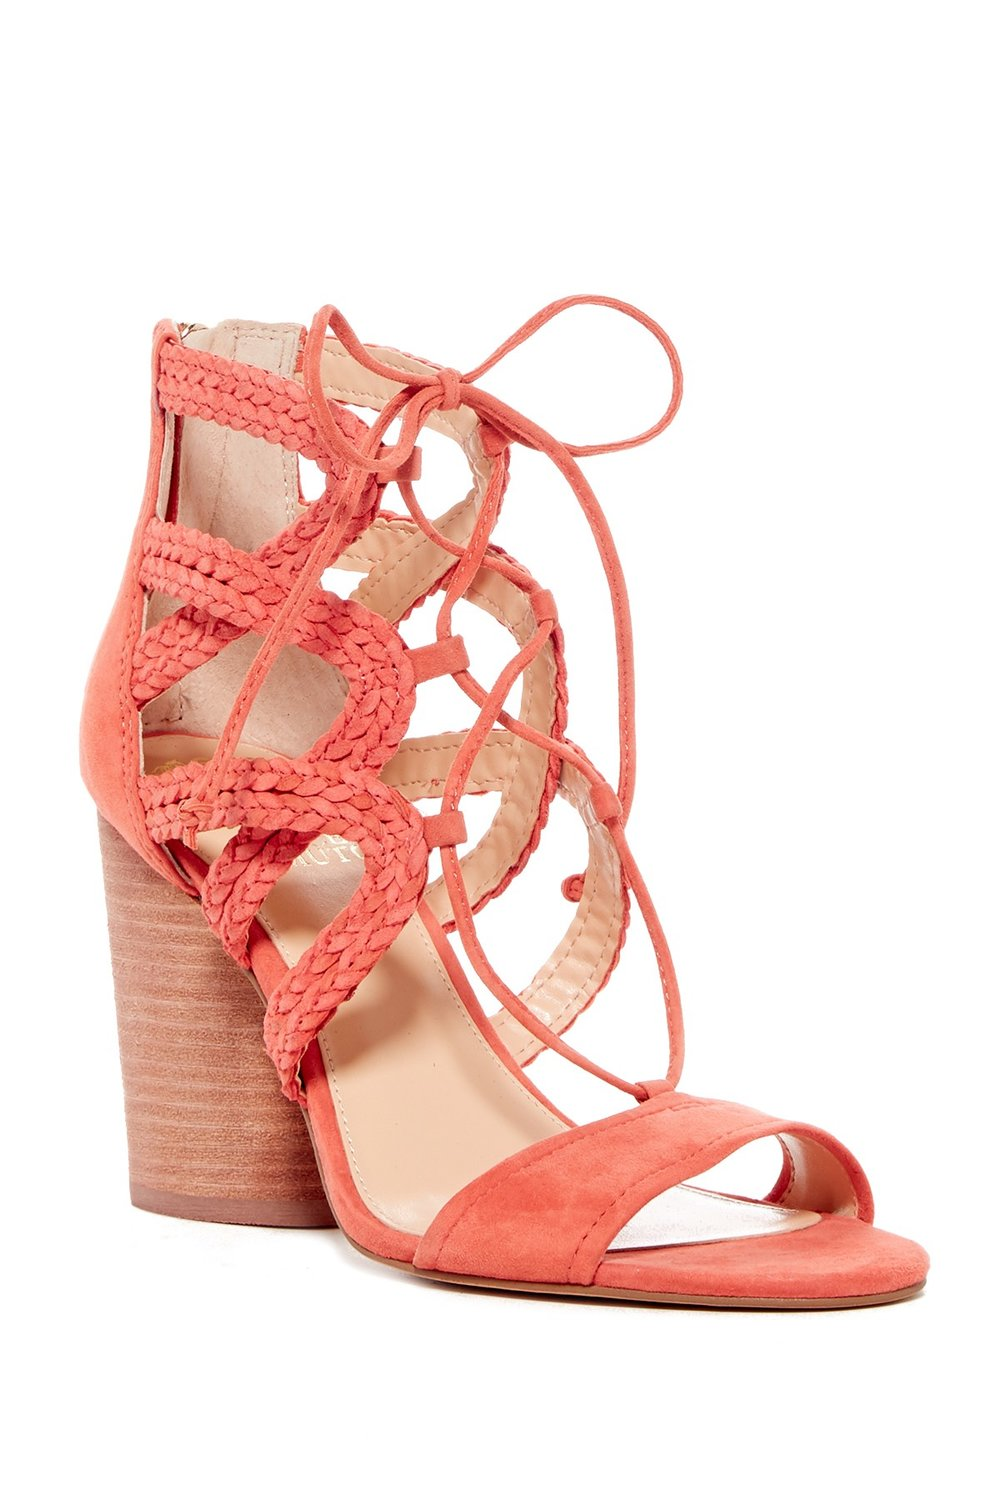 Lace ups are still going strong and they bring a feminine and fun vibe into the mix. Try a block heel like this one for ease when walking.  Vince Camuto Ambular Suede Sandal. Nordstrom Rack. Was: $120. Now: $69.